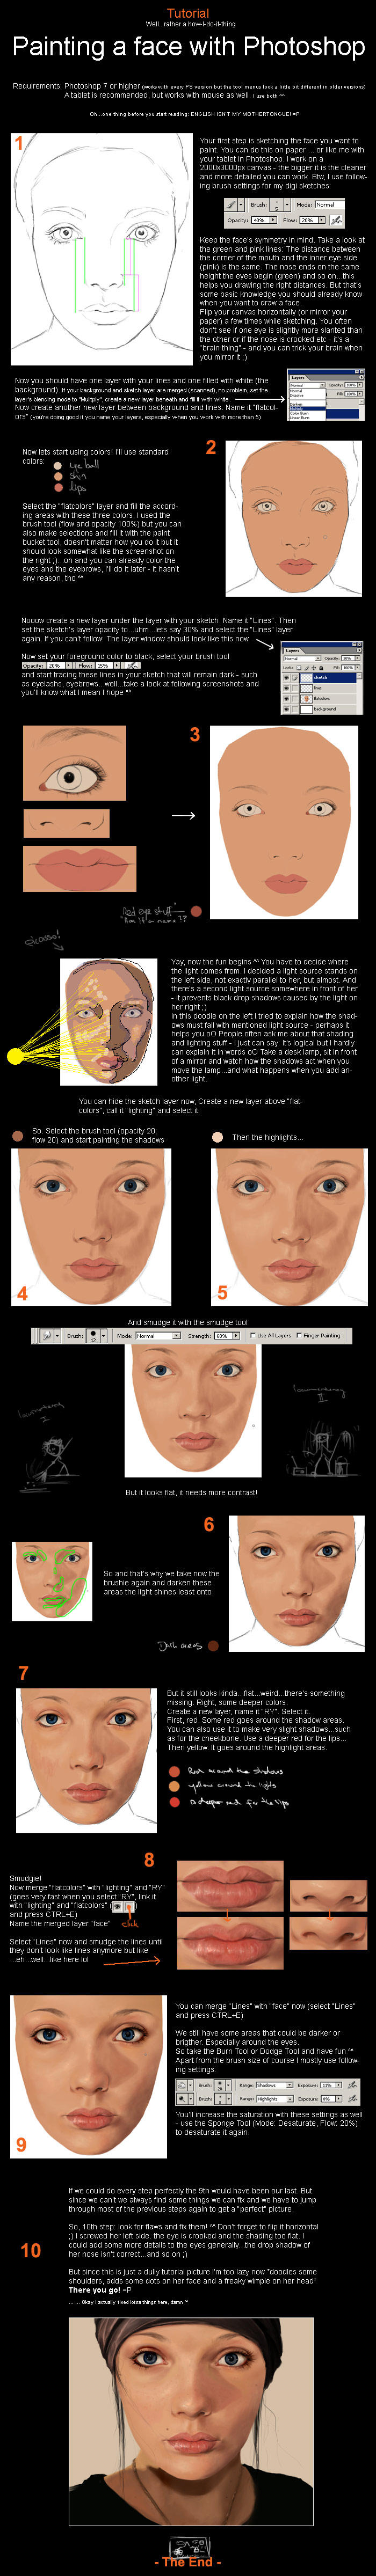 Photoshop - Painting a face by sirasan